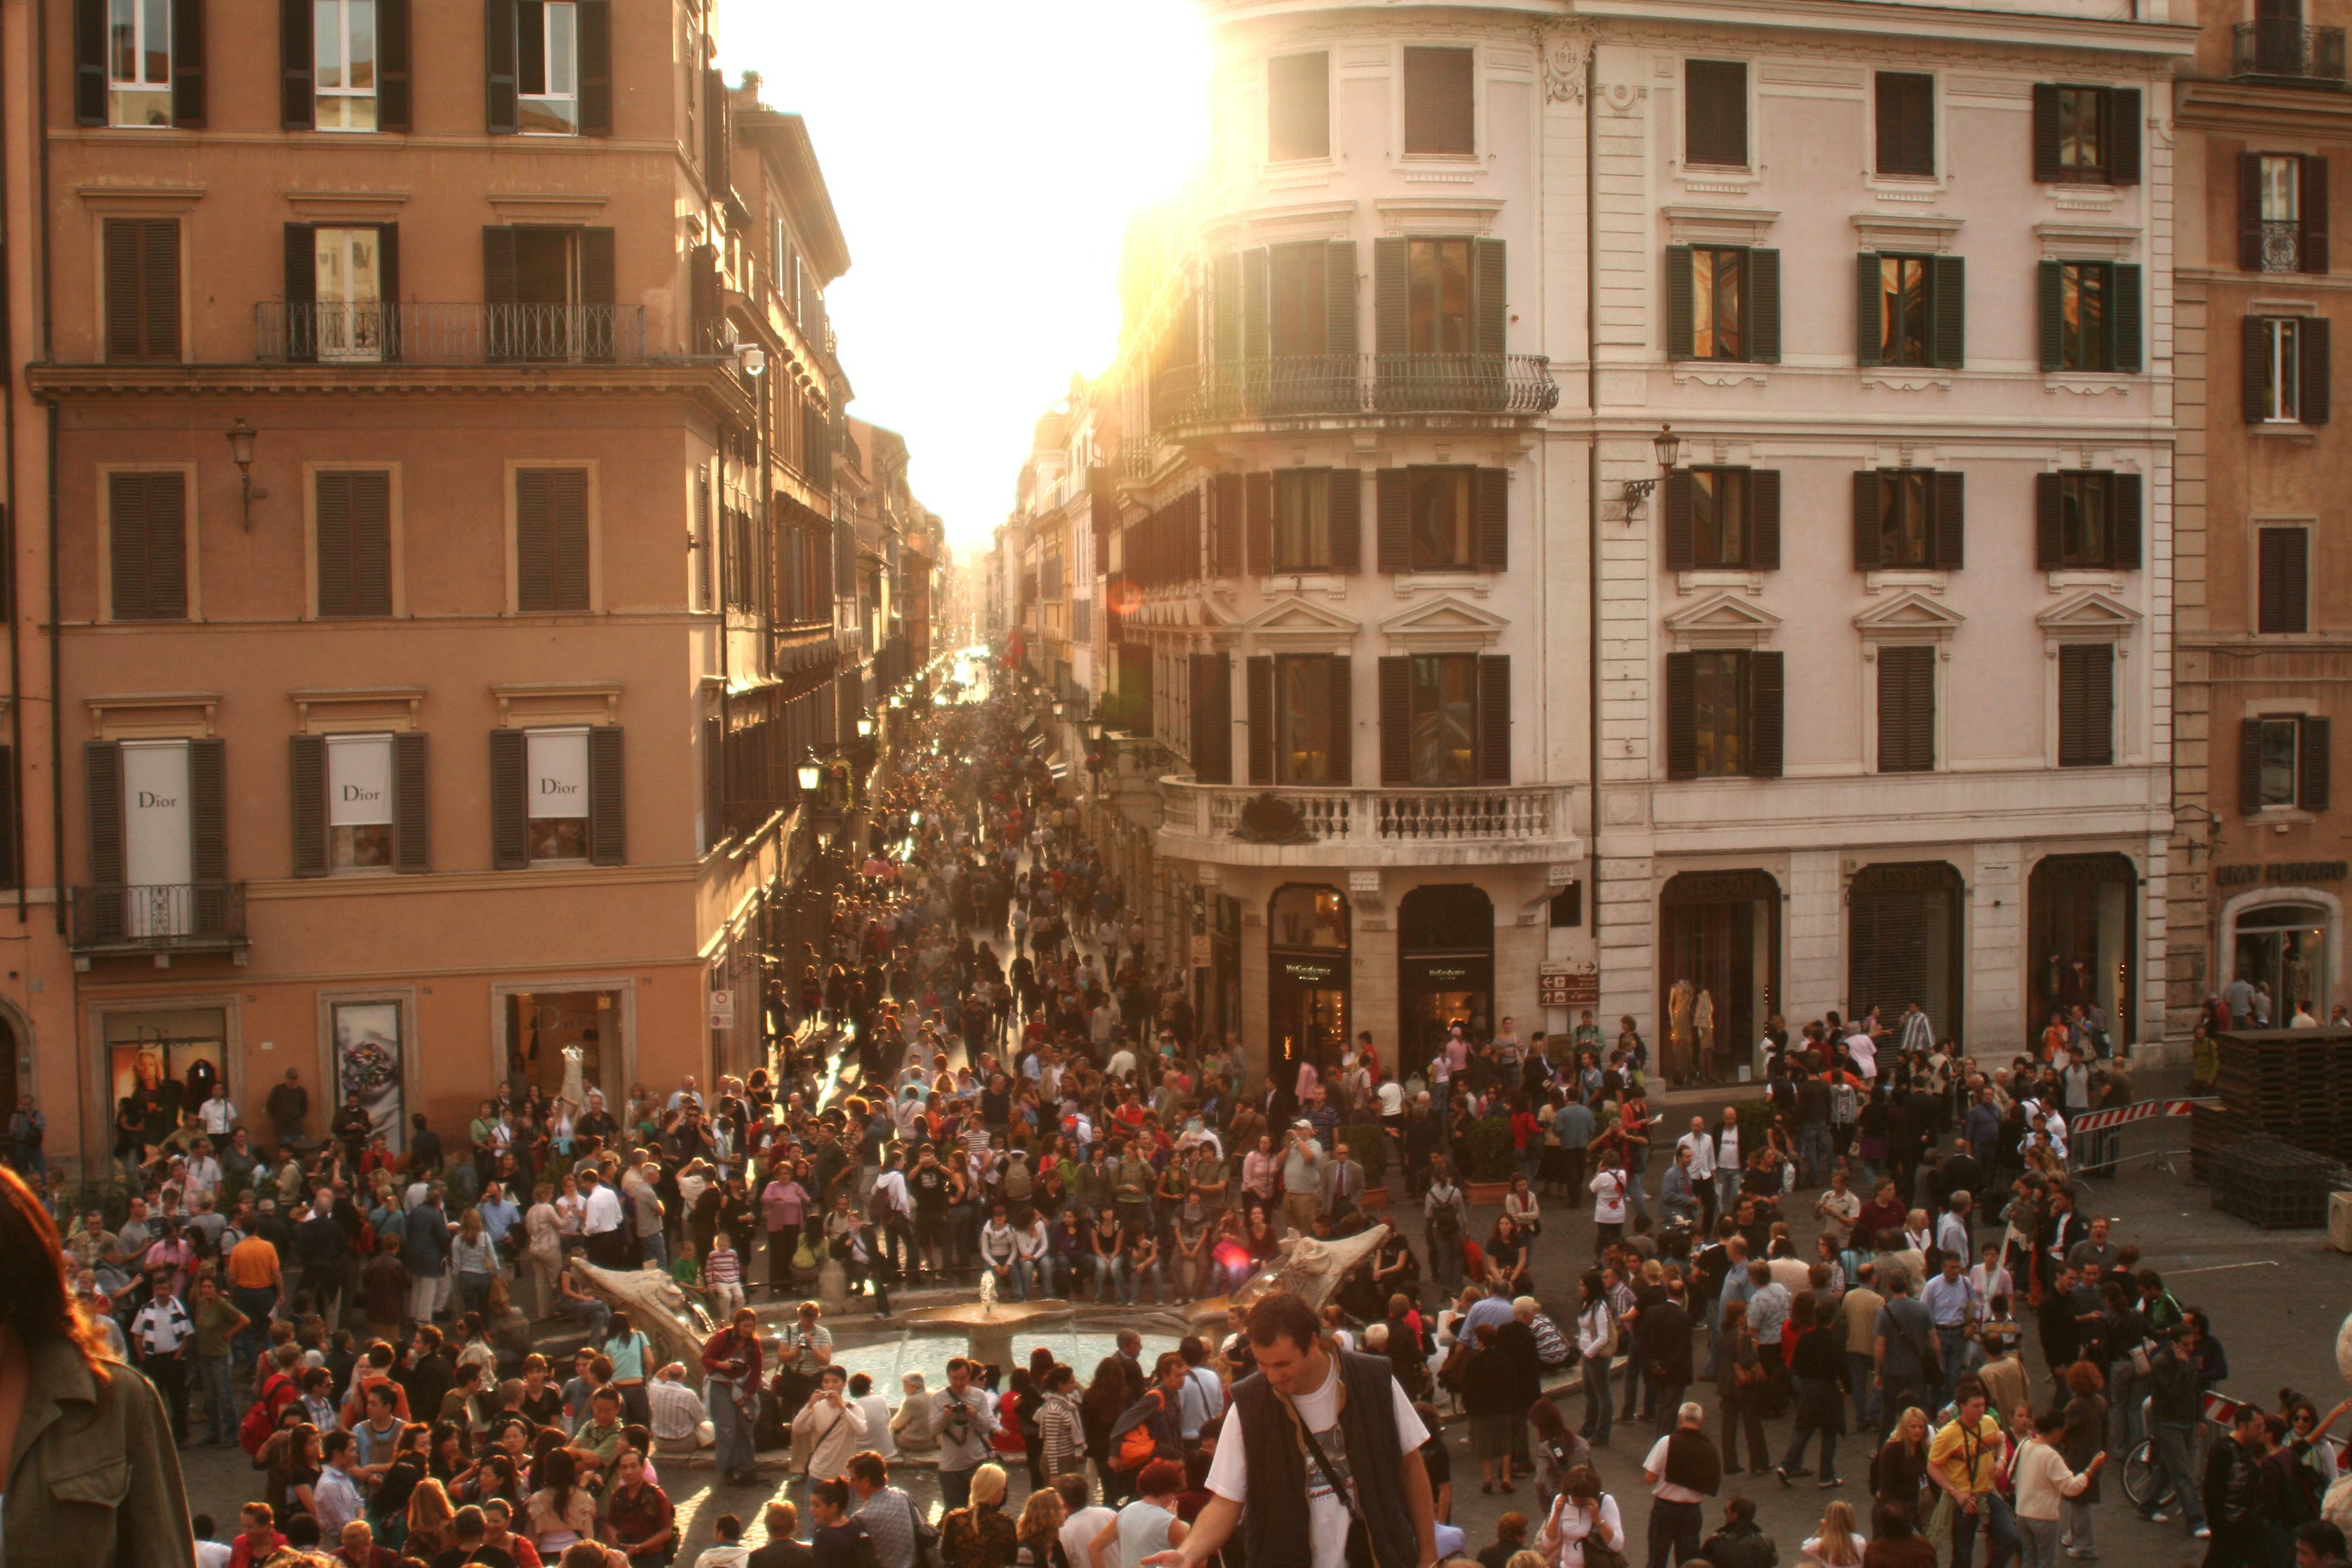 People Gathering during Sunset